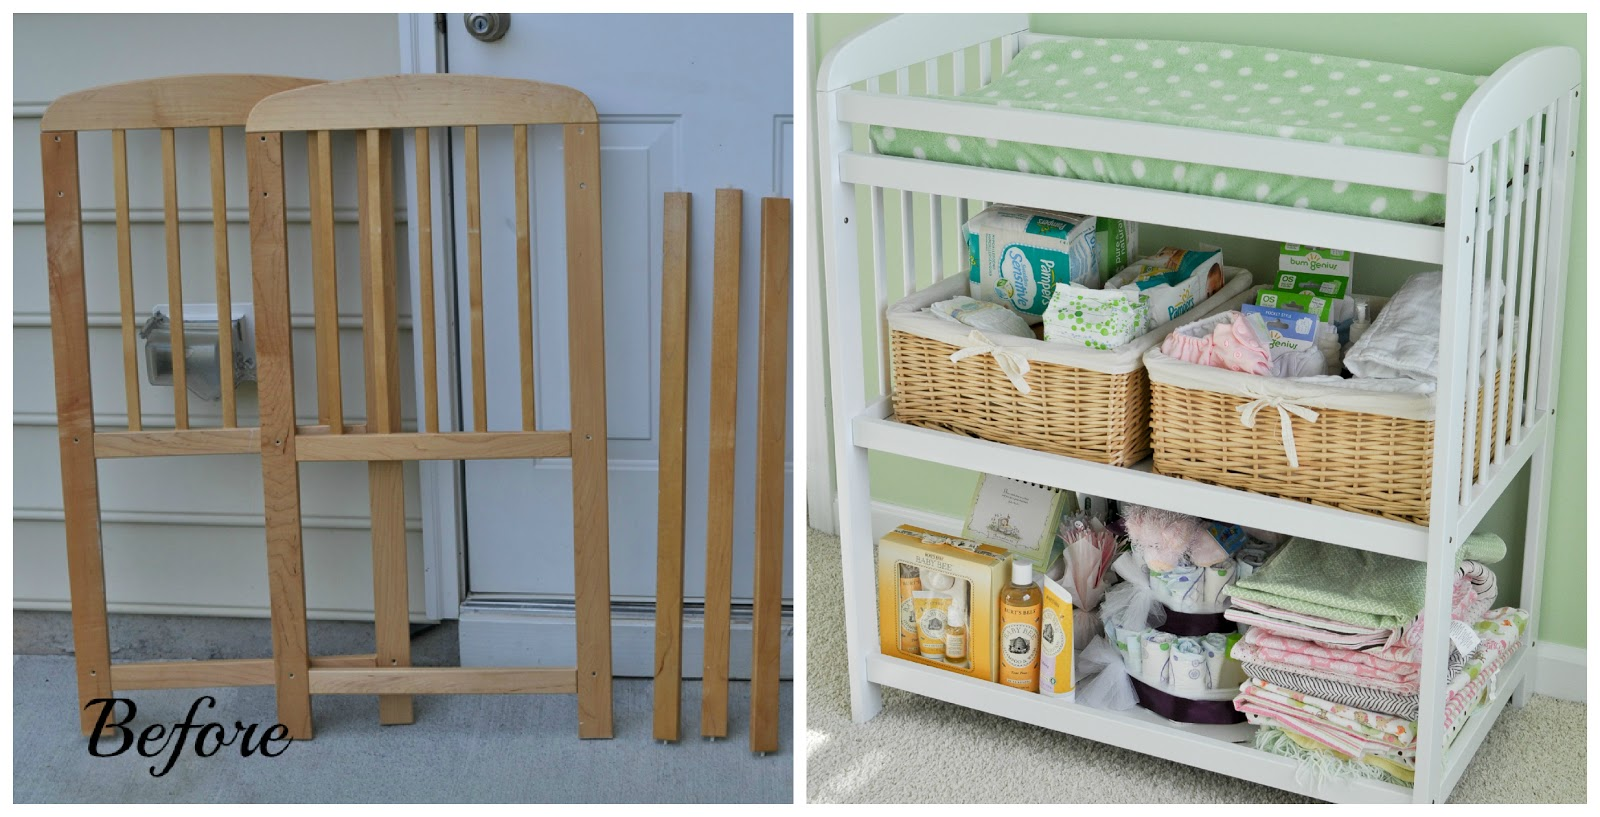 forever after blog baby nursery diy project